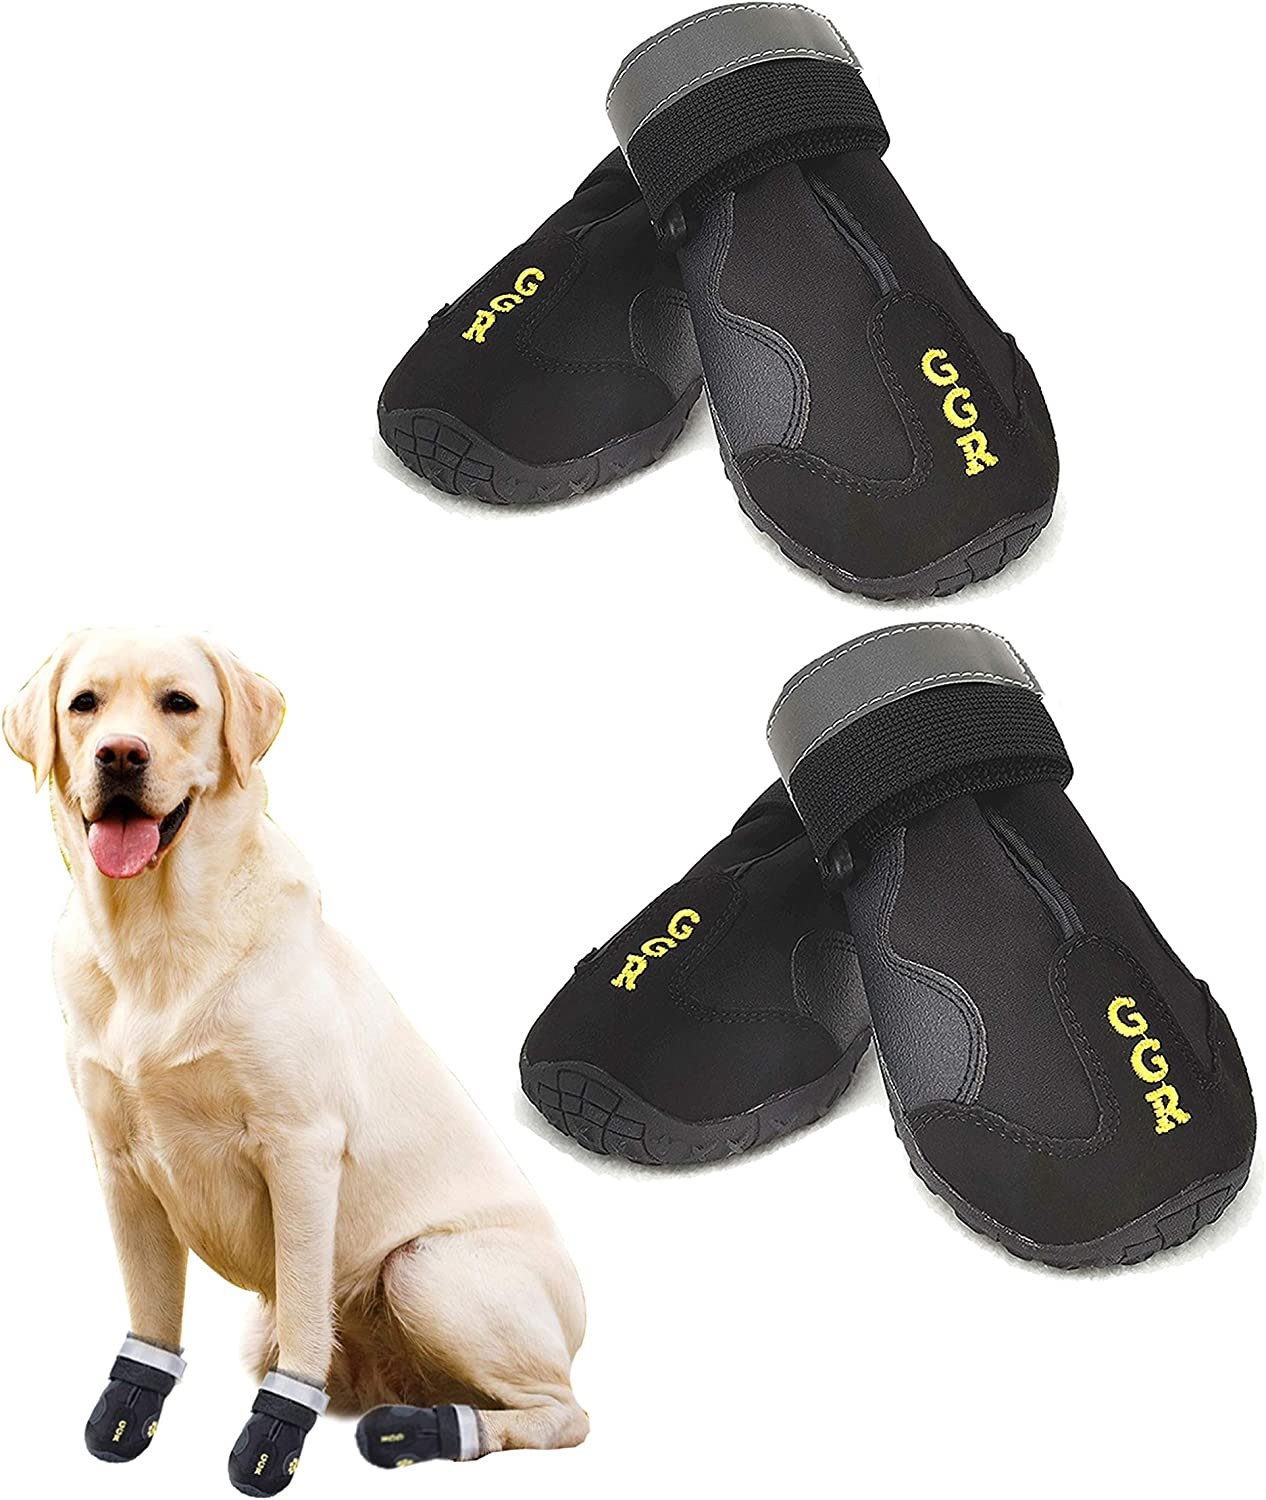 Dog Socks 4 Pcs Dog Shoes with Reflective Strap Breathable Waterproof Dog Rain Boots Pet Paw Protector Socks for Small Dogs 1#